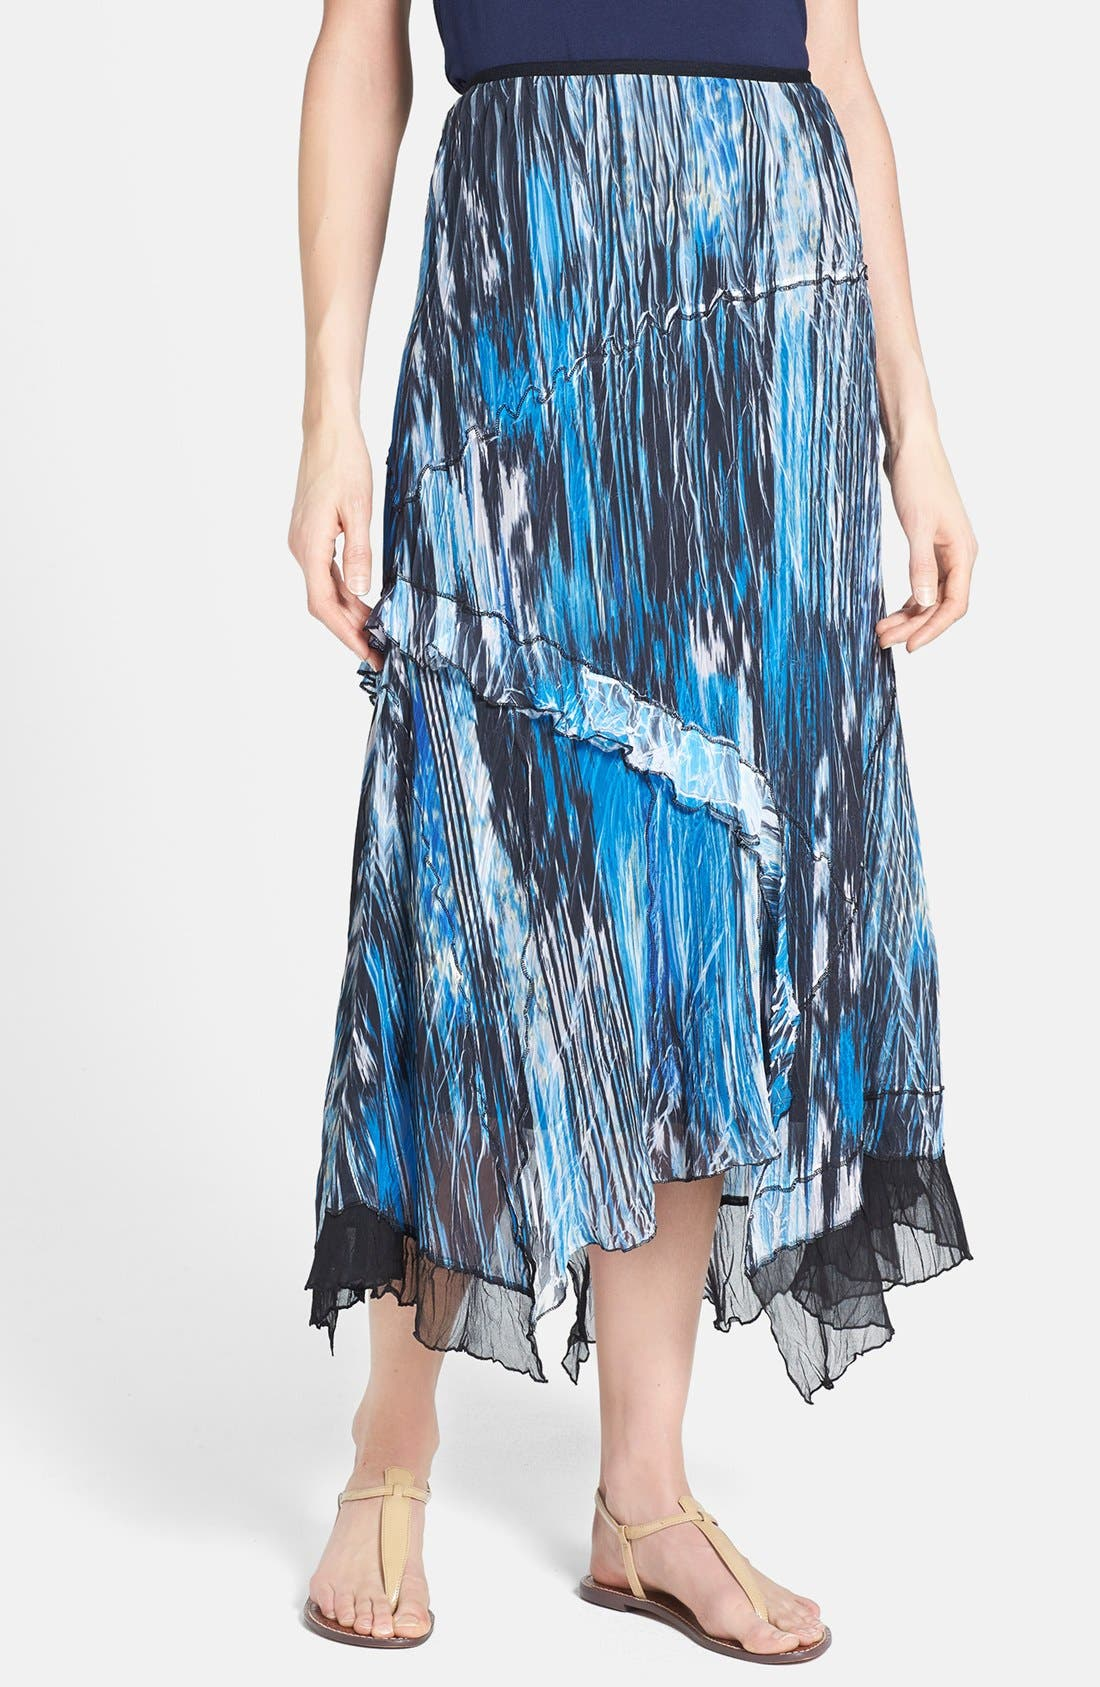 Alternate Image 1 Selected - Komarov Print Handkerchief Hem Skirt